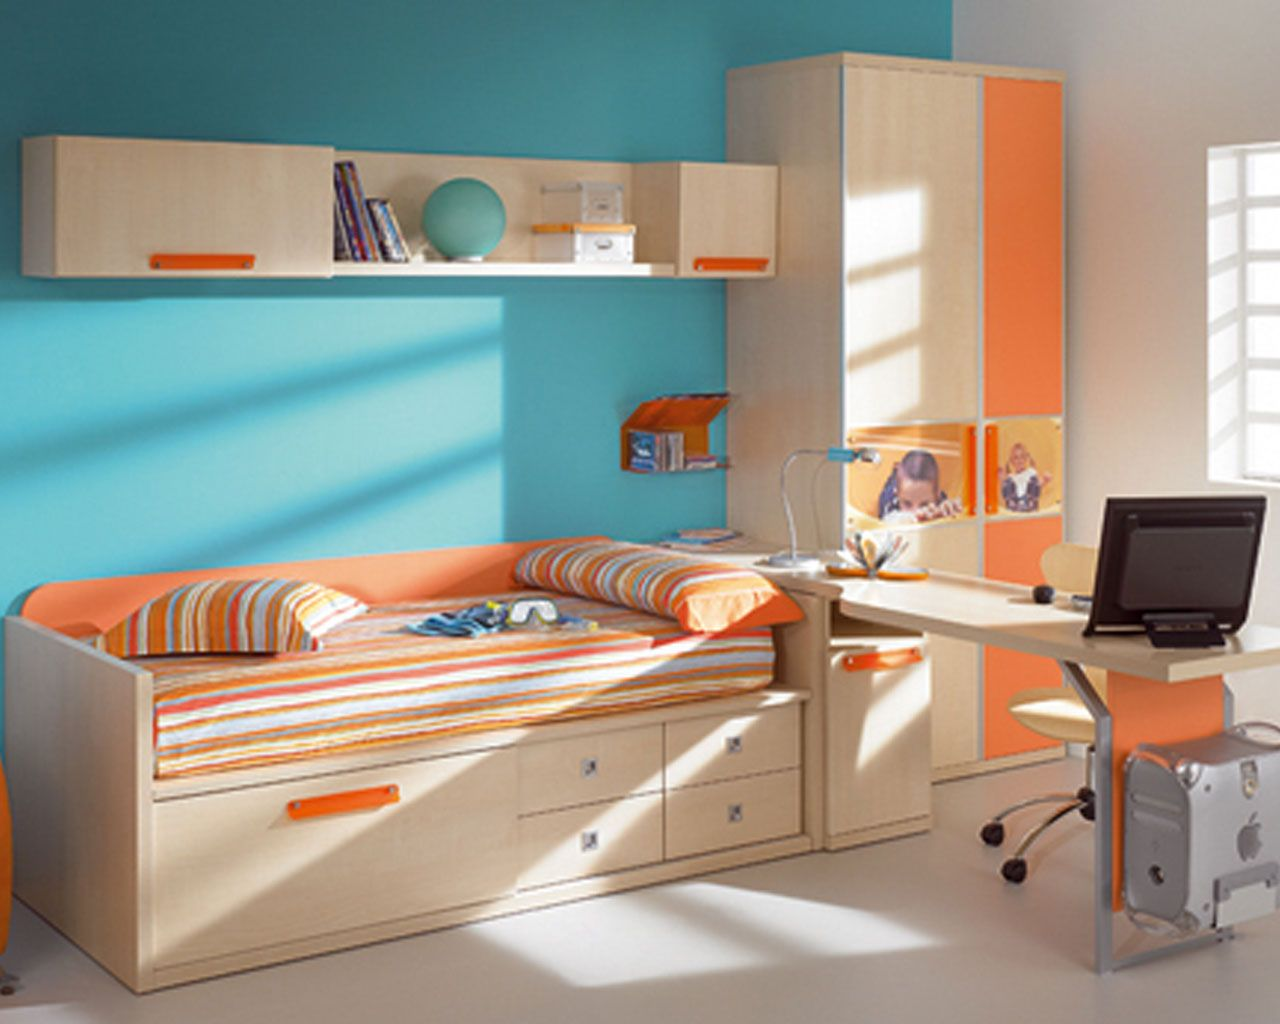 Bedroom designer for kids - Images About Kids Room Ideas On Pinterest Teenager Rooms Kids Interior Design Bedrooms